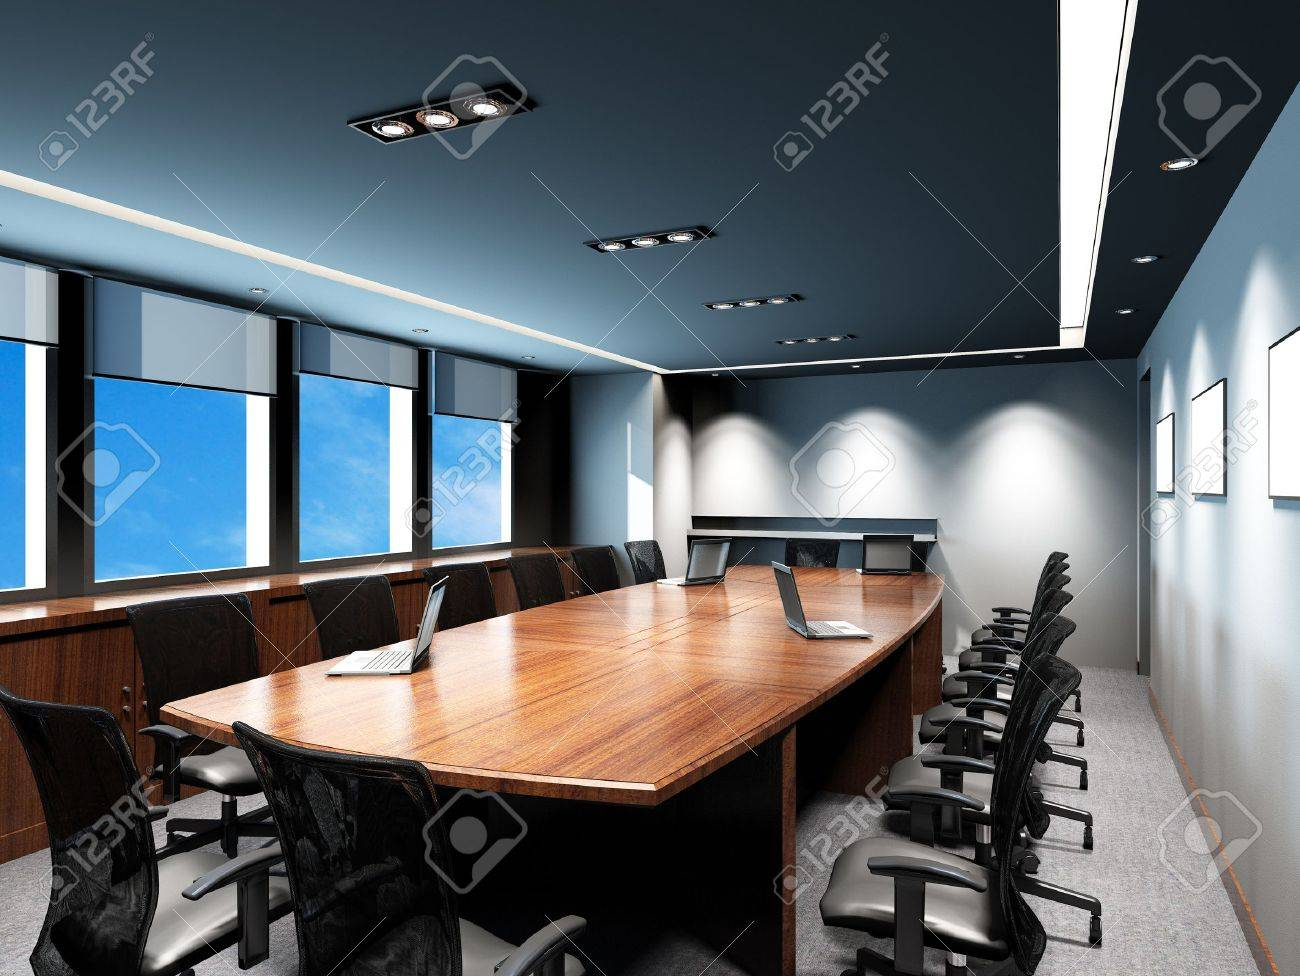 Business meeting room in office with modern decoration Stock Photo - 15750680